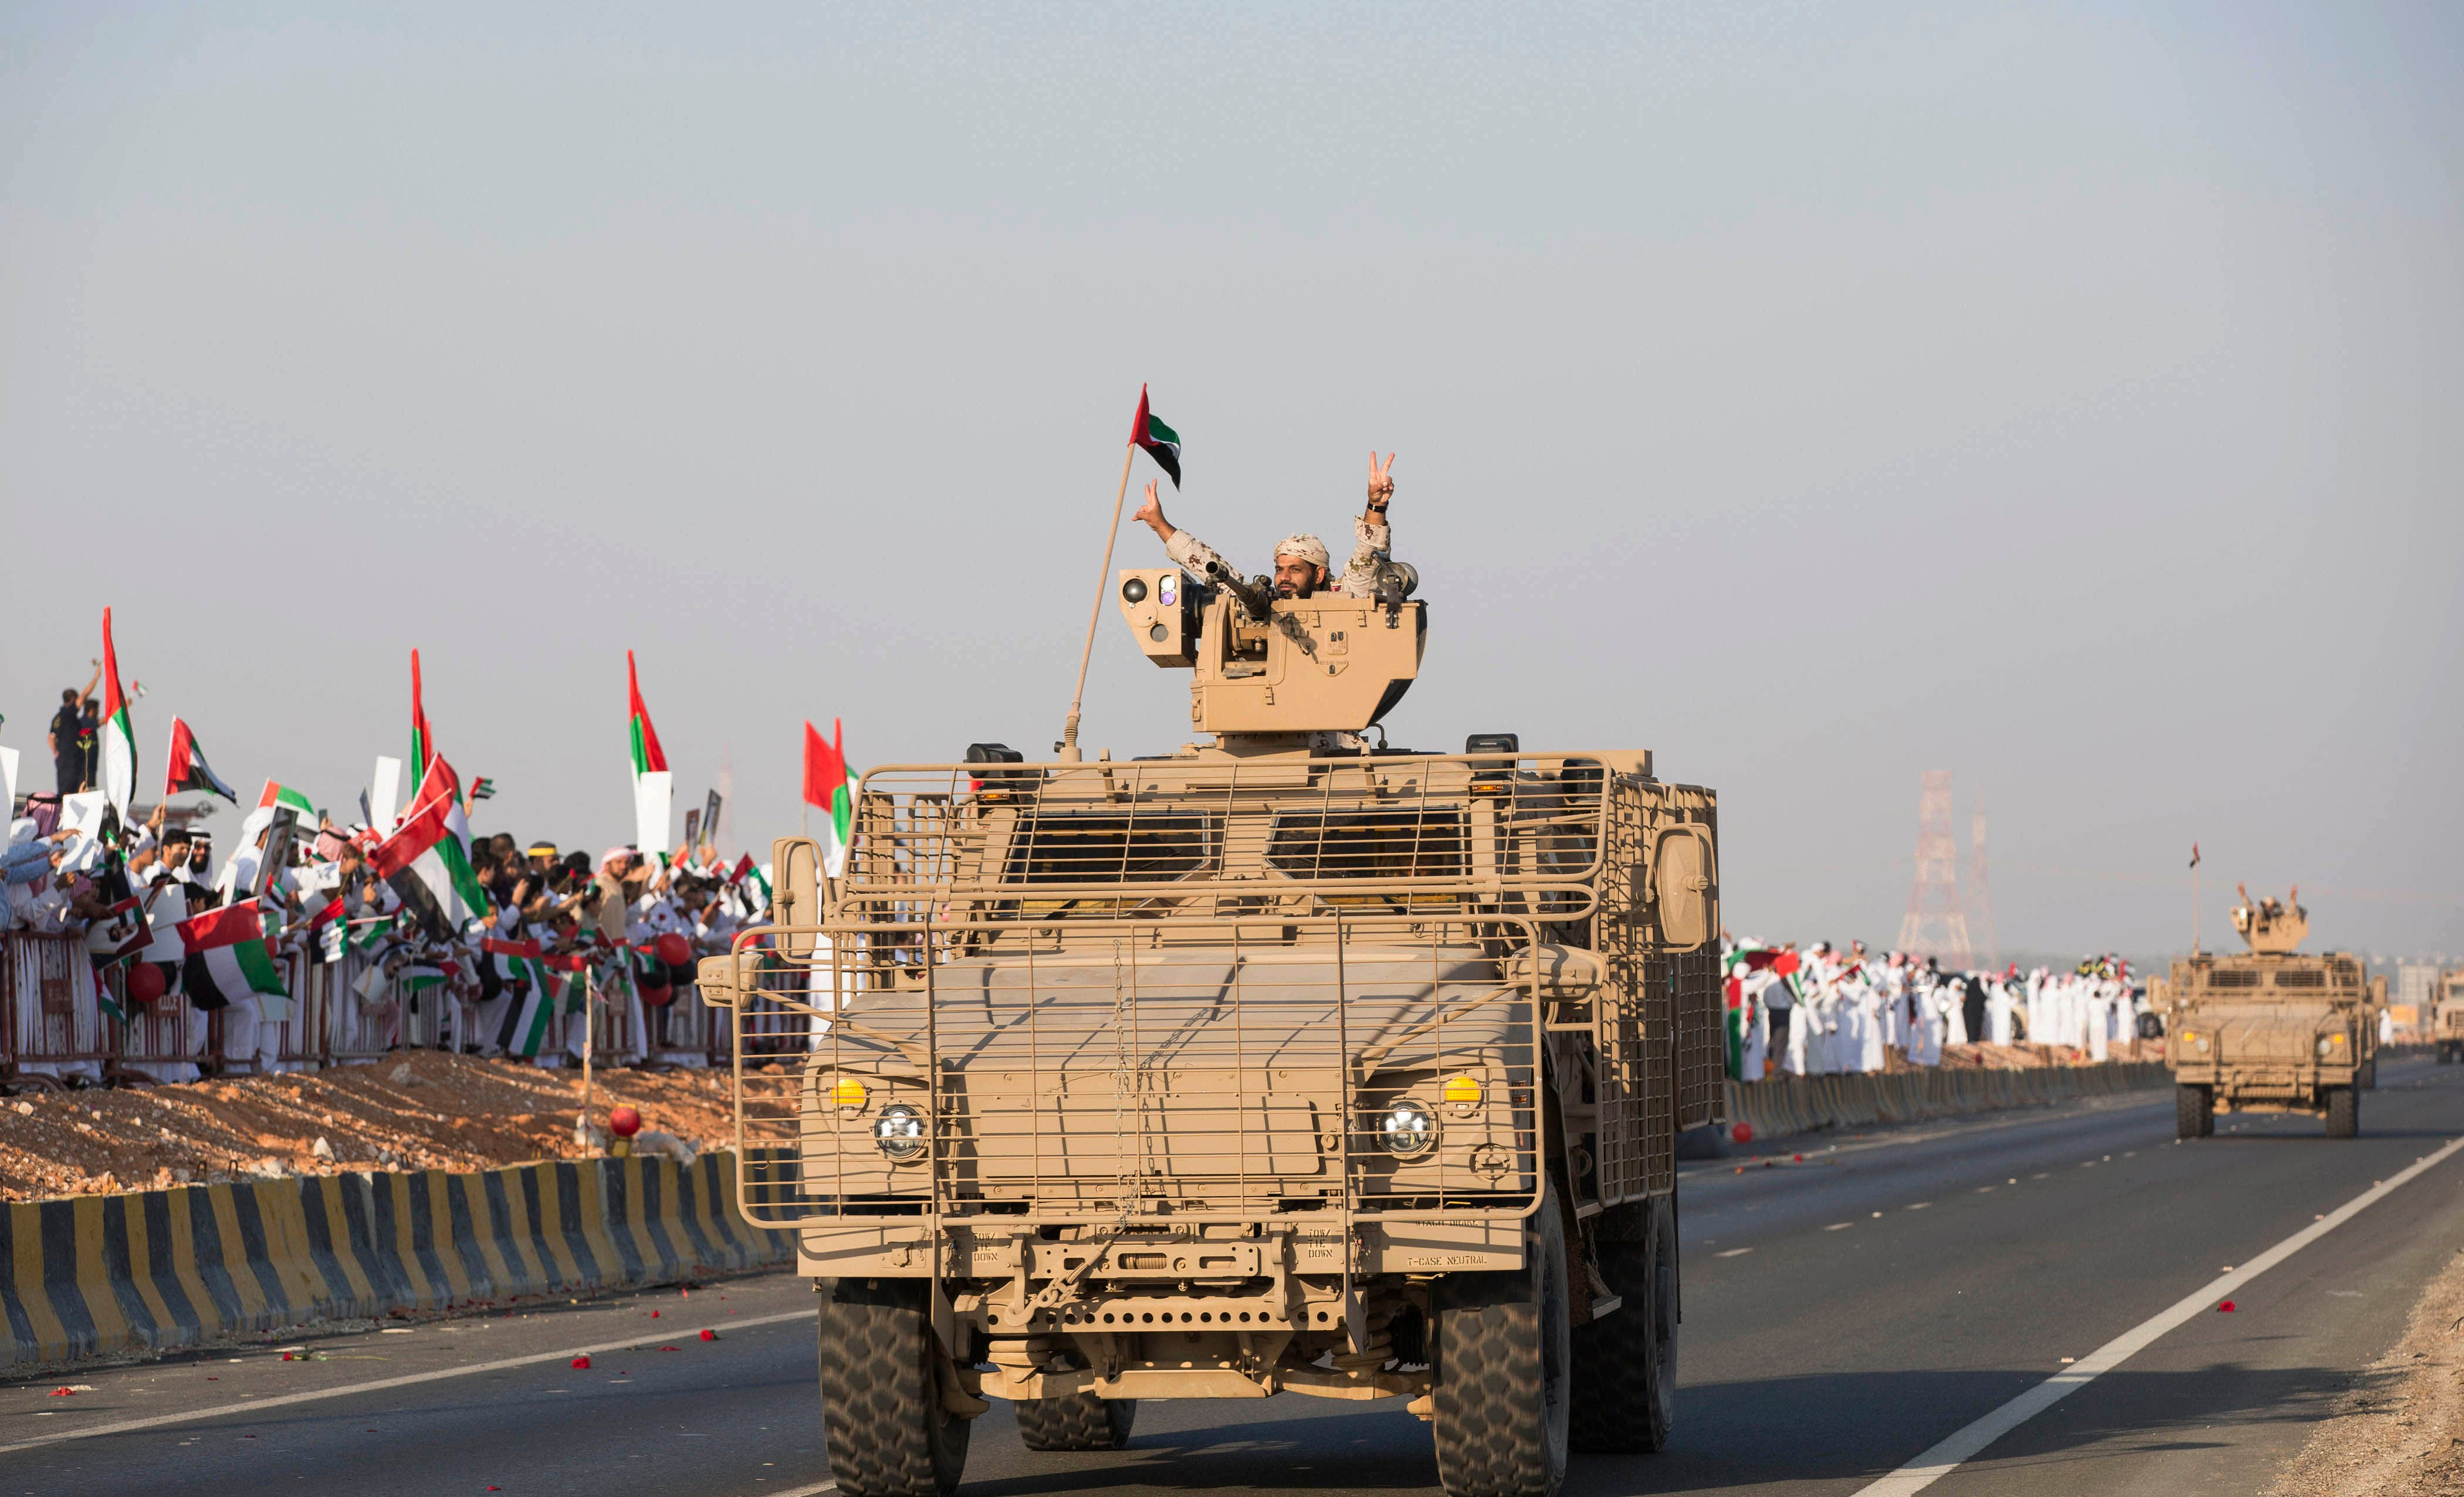 Emirati people wave the national flag as a convoy of UAE military vehicles and personnel travels from Al Hamra Military Base to Zayed Military City, marking the return of the first batch of UAE Armed Forces military personnel from Yemen, United Arab Emirates, Saturday, Nov. 7, 2015. (WAM/AP)